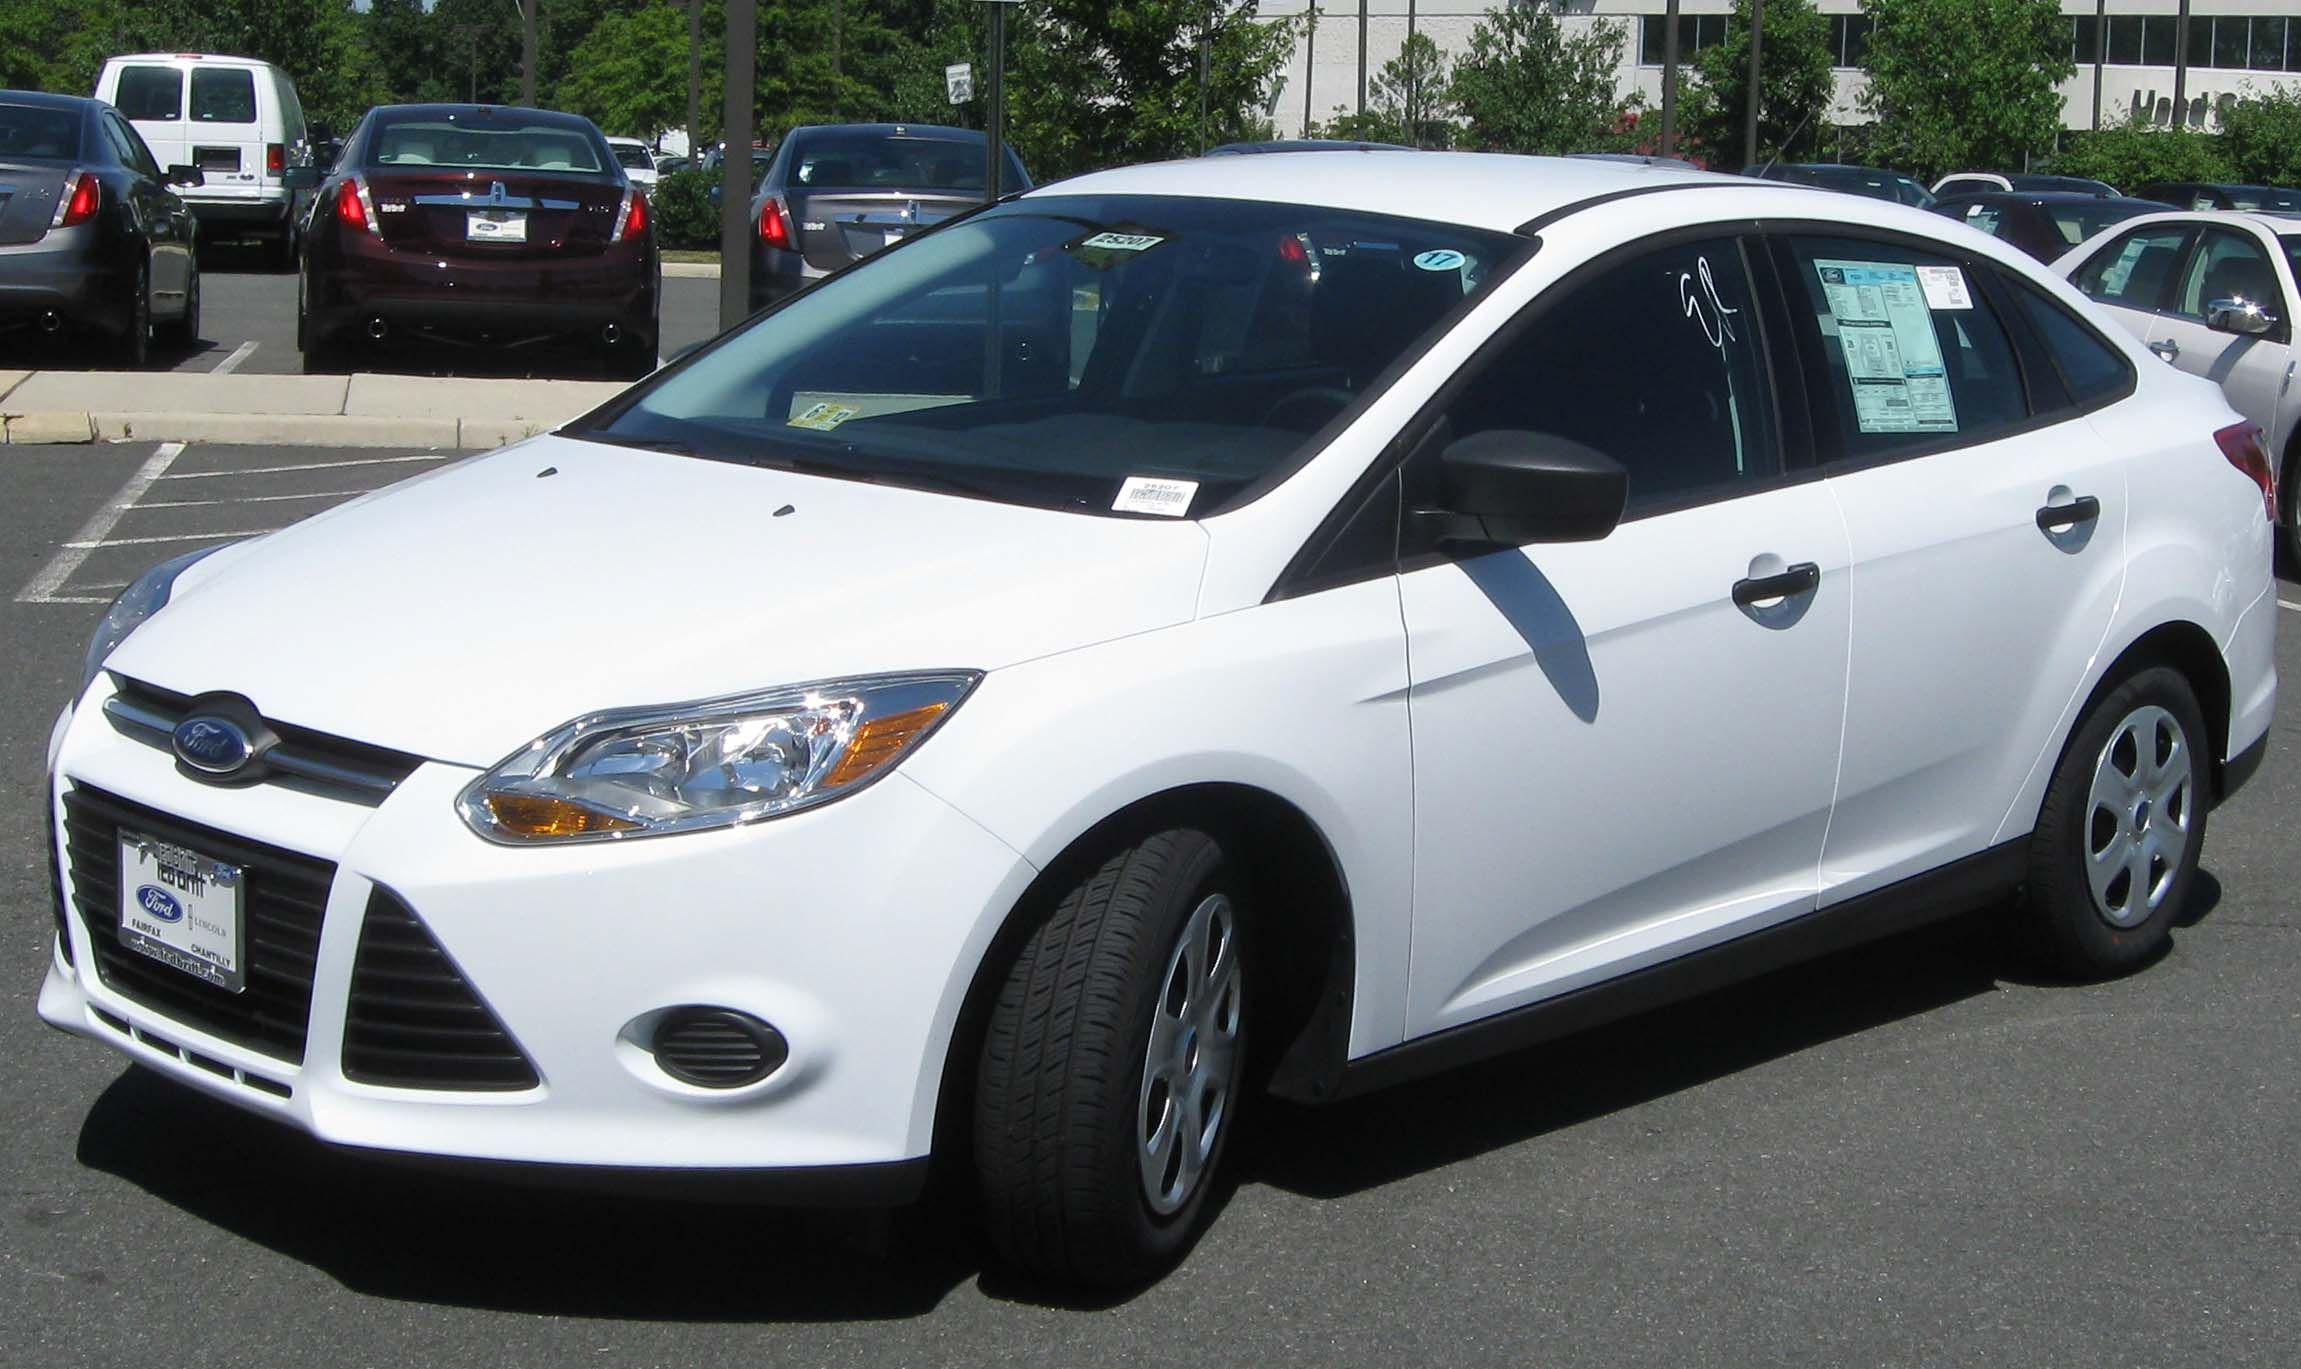 2012 Ford Focus Impressive Compact Sedan Bought From Auto Bid